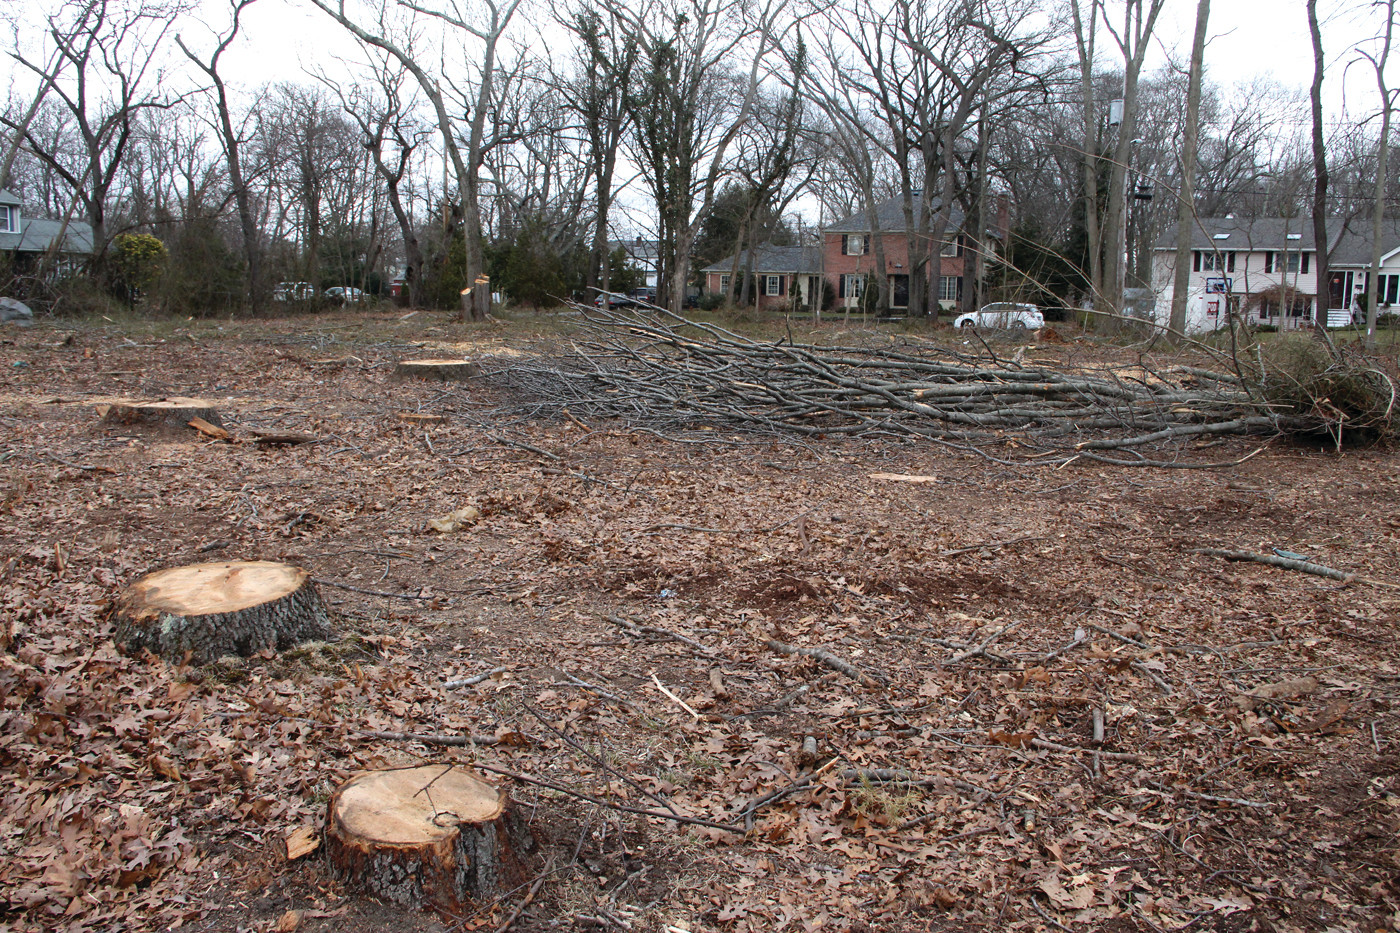 CUT TO THE GROUND: More than 30 trees were felled on city land on Lansdowne Road on April 5 and 6 as a site for the staging of sewer construction equipment and supplies. The Sewer Authority has since found another location.